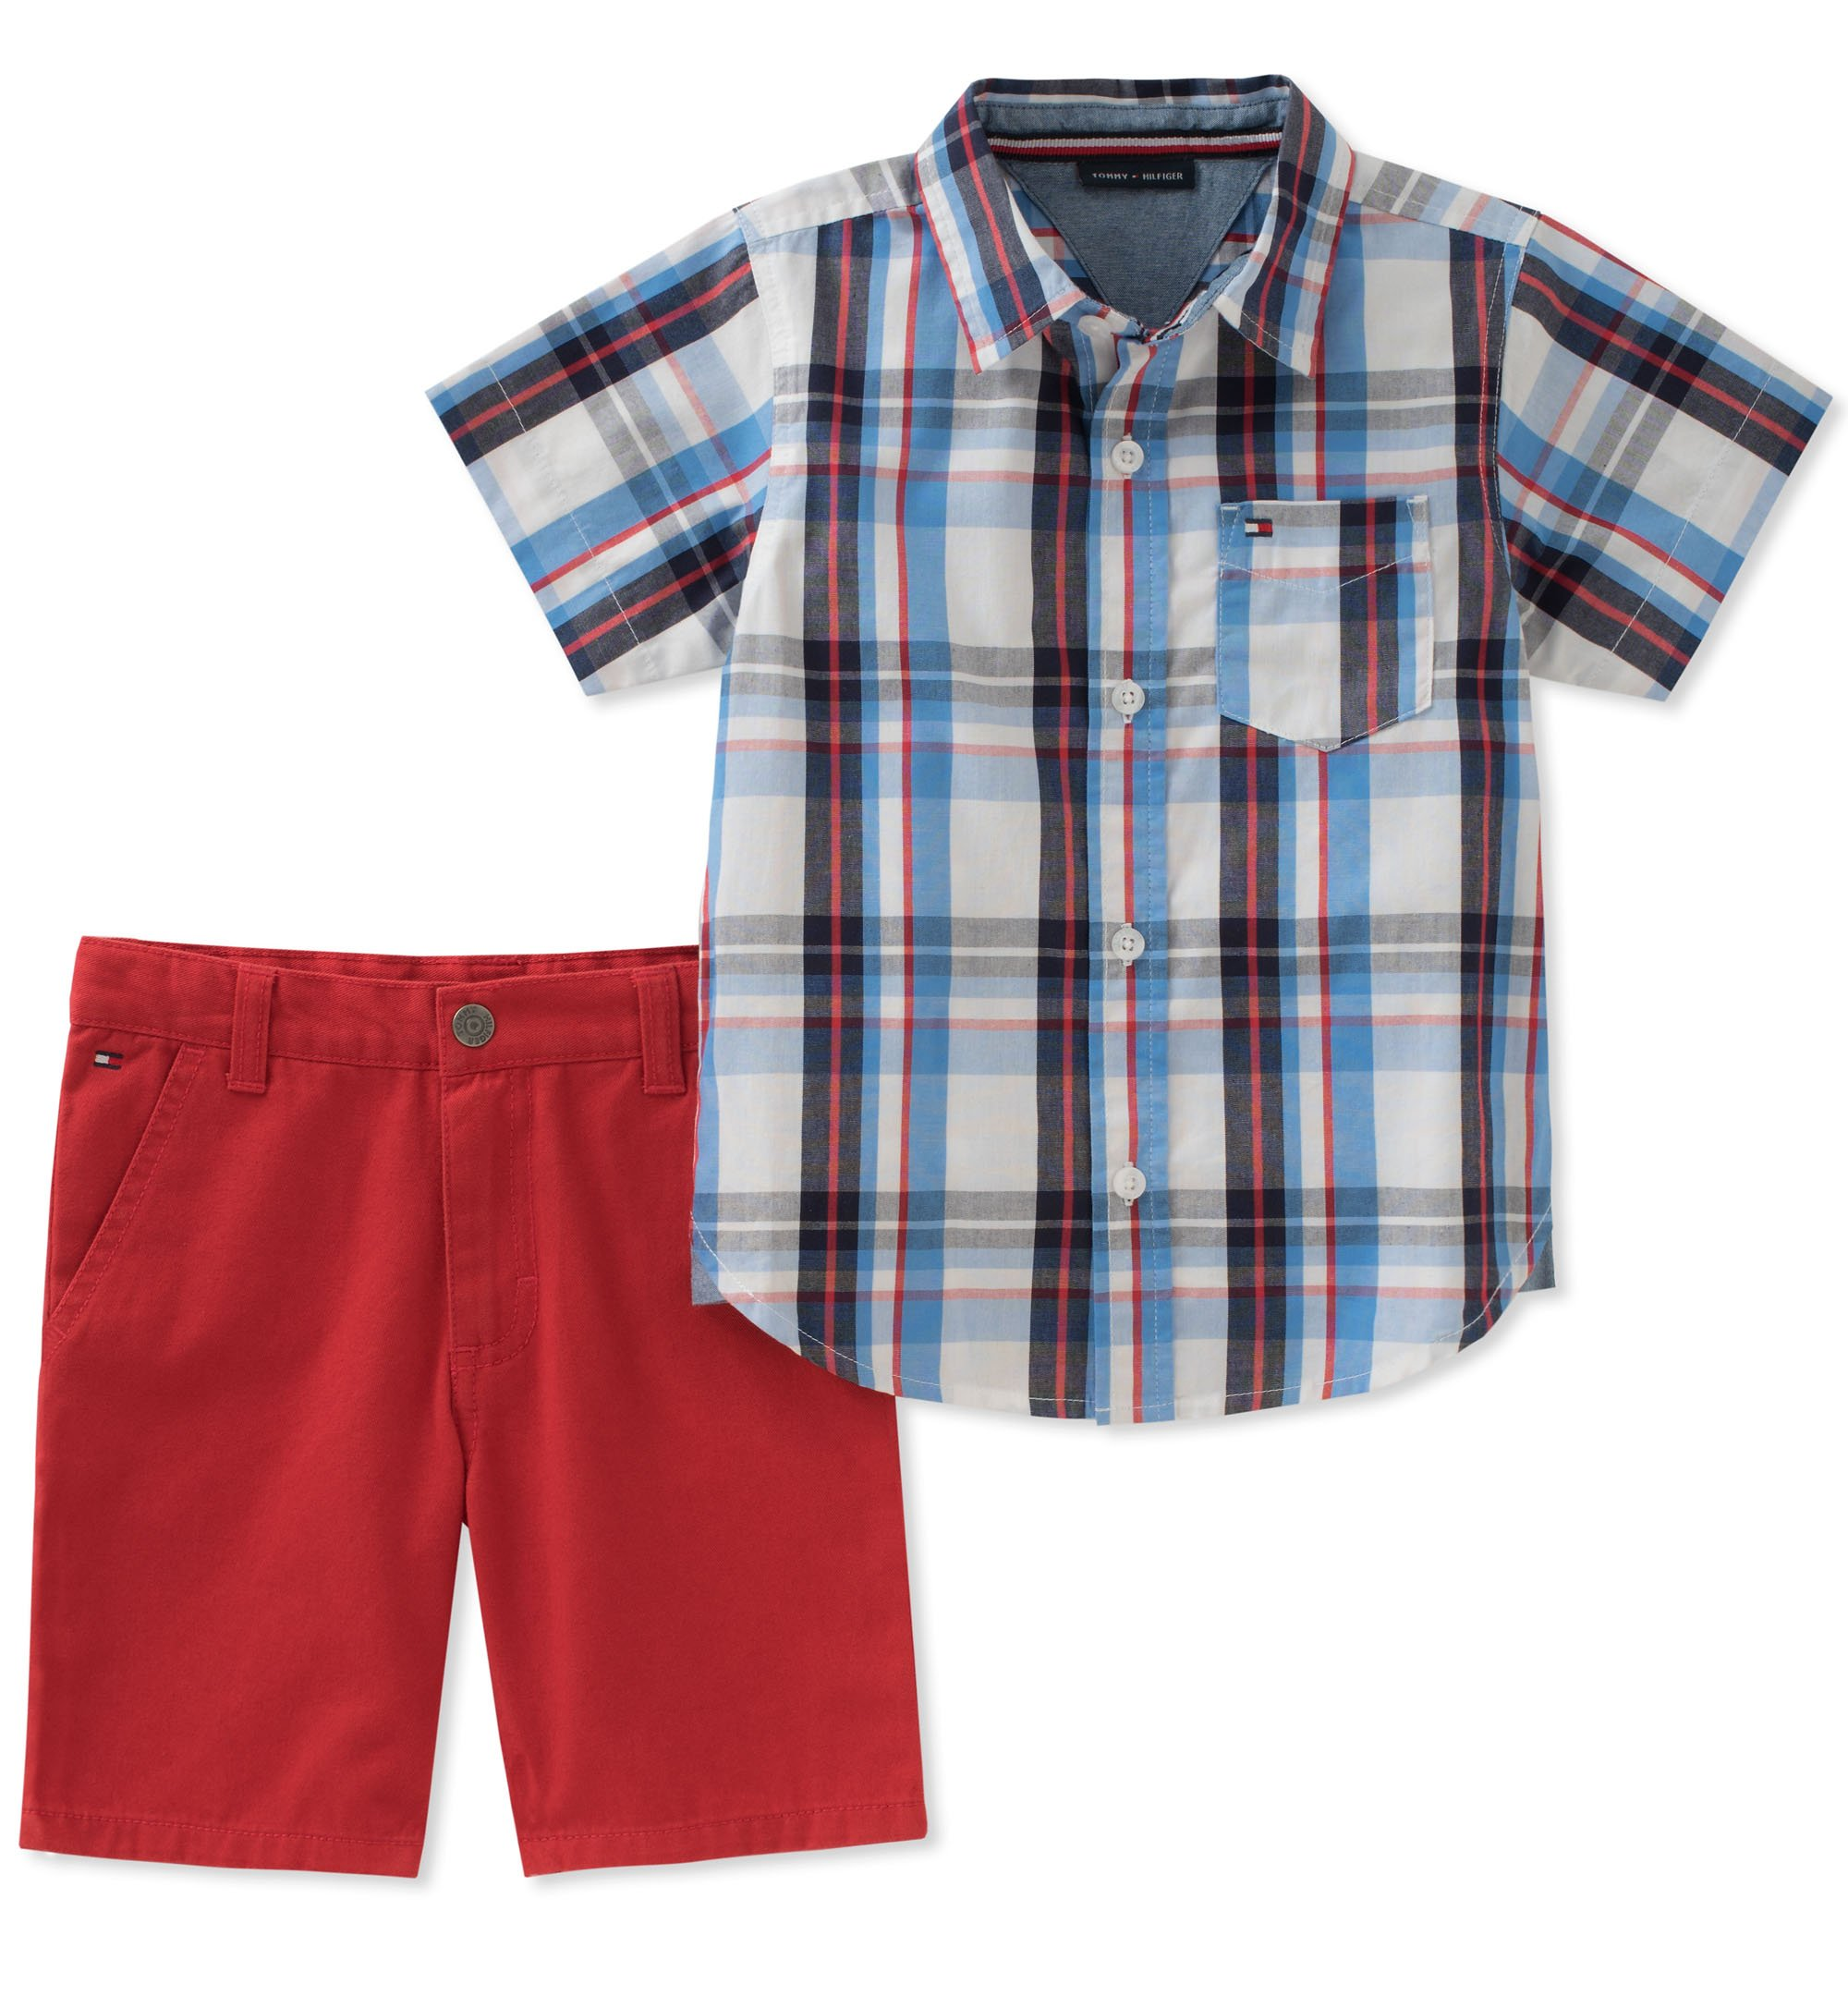 Tommy Hilfiger Boys' Toddler 2 Pieces Shirt Shorts Set, Blue/red, 4T